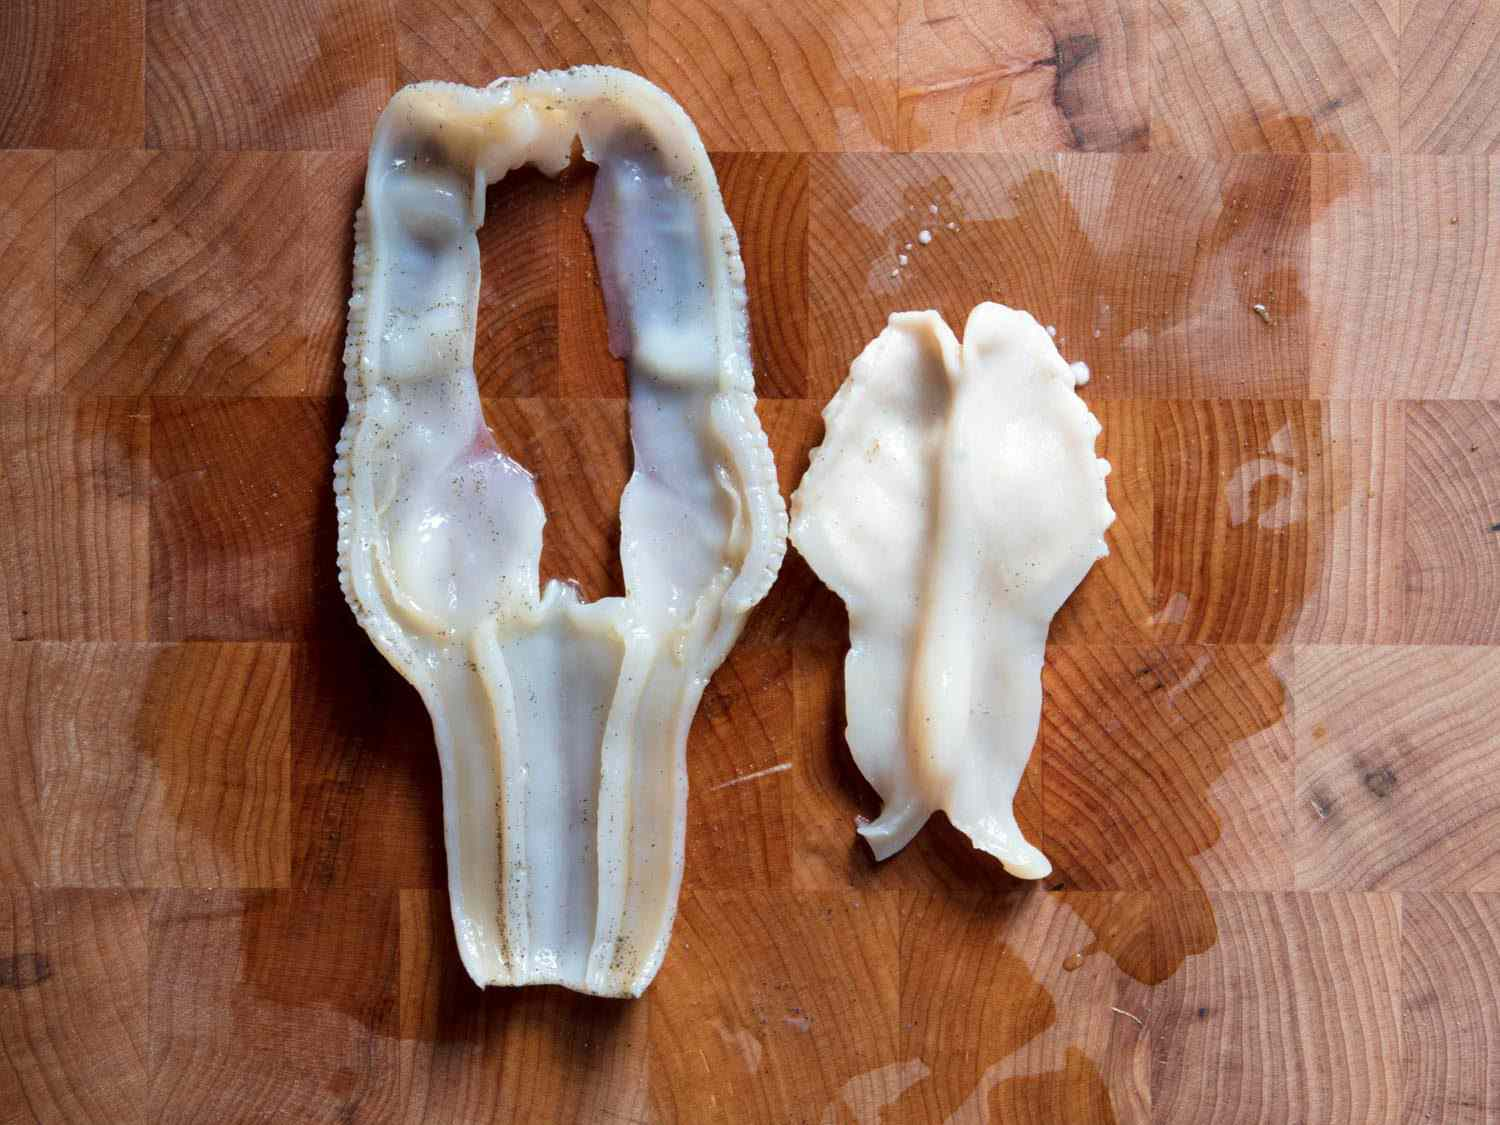 Cleaned razor clam meat on a wooden cutting board